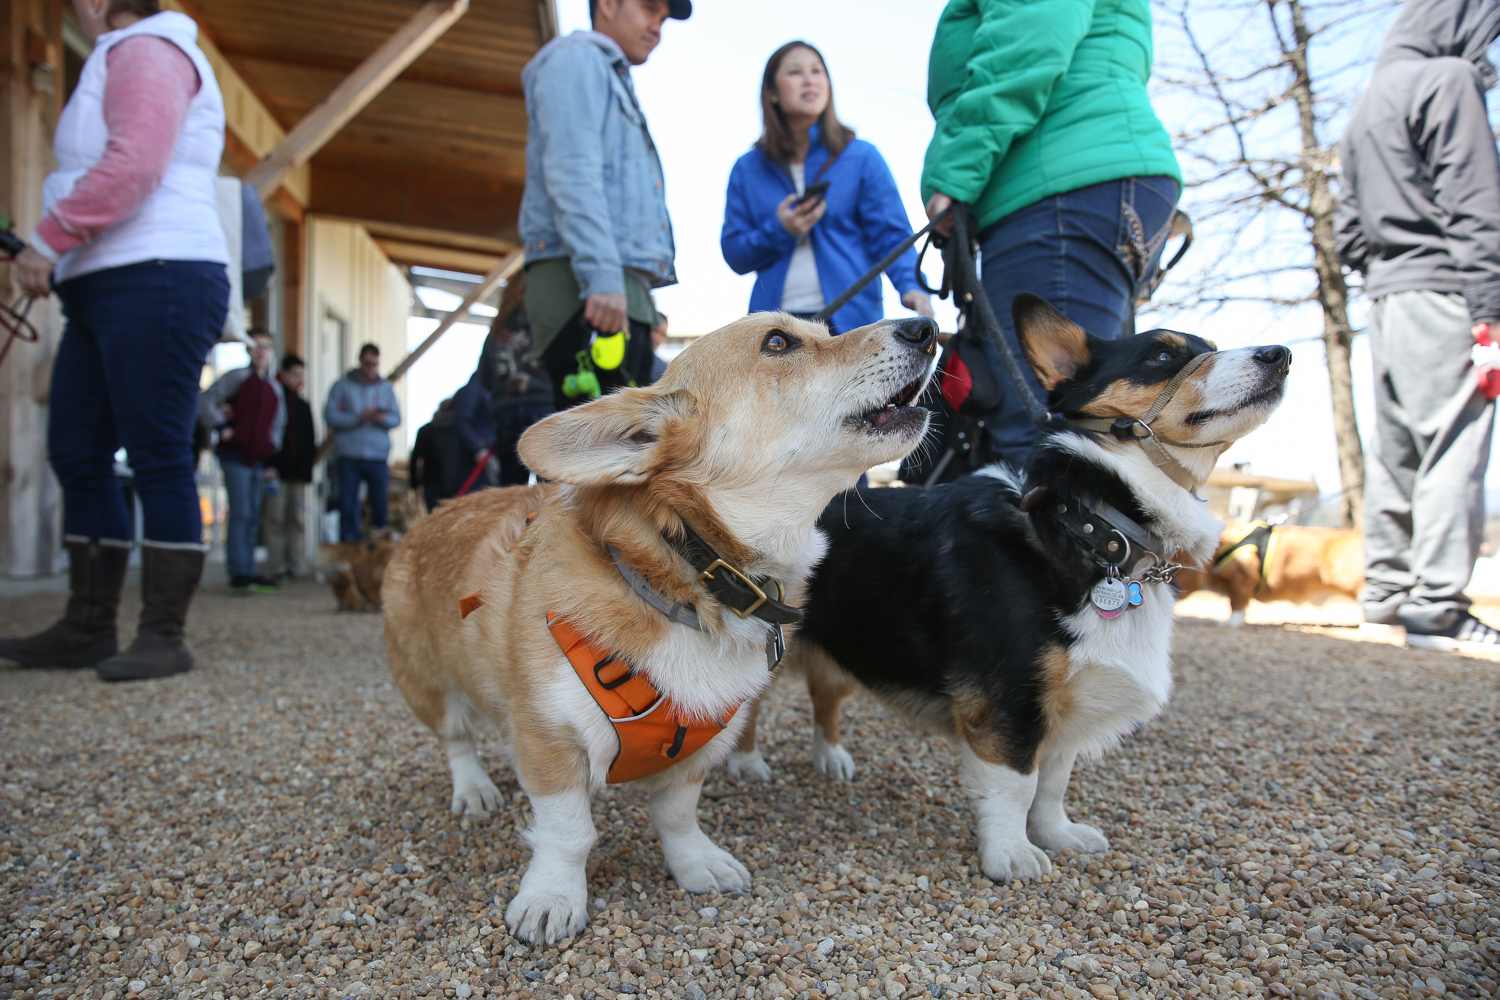 Moogle the fluffy corgi turned four this weekend, joined by roughly 50 other corgis at Barrel Oak Winery. The celebration benefitted the D.C.-based East Coast Corgi Rescue. Four-legged guests were able to enjoy plenty of socializing, lounging in the sun and treats, but humans were able to enjoy wine, snacks, a raffle and, of course, plenty of cute corgis. (Amanda Andrade-Rhoades/DC Refined)